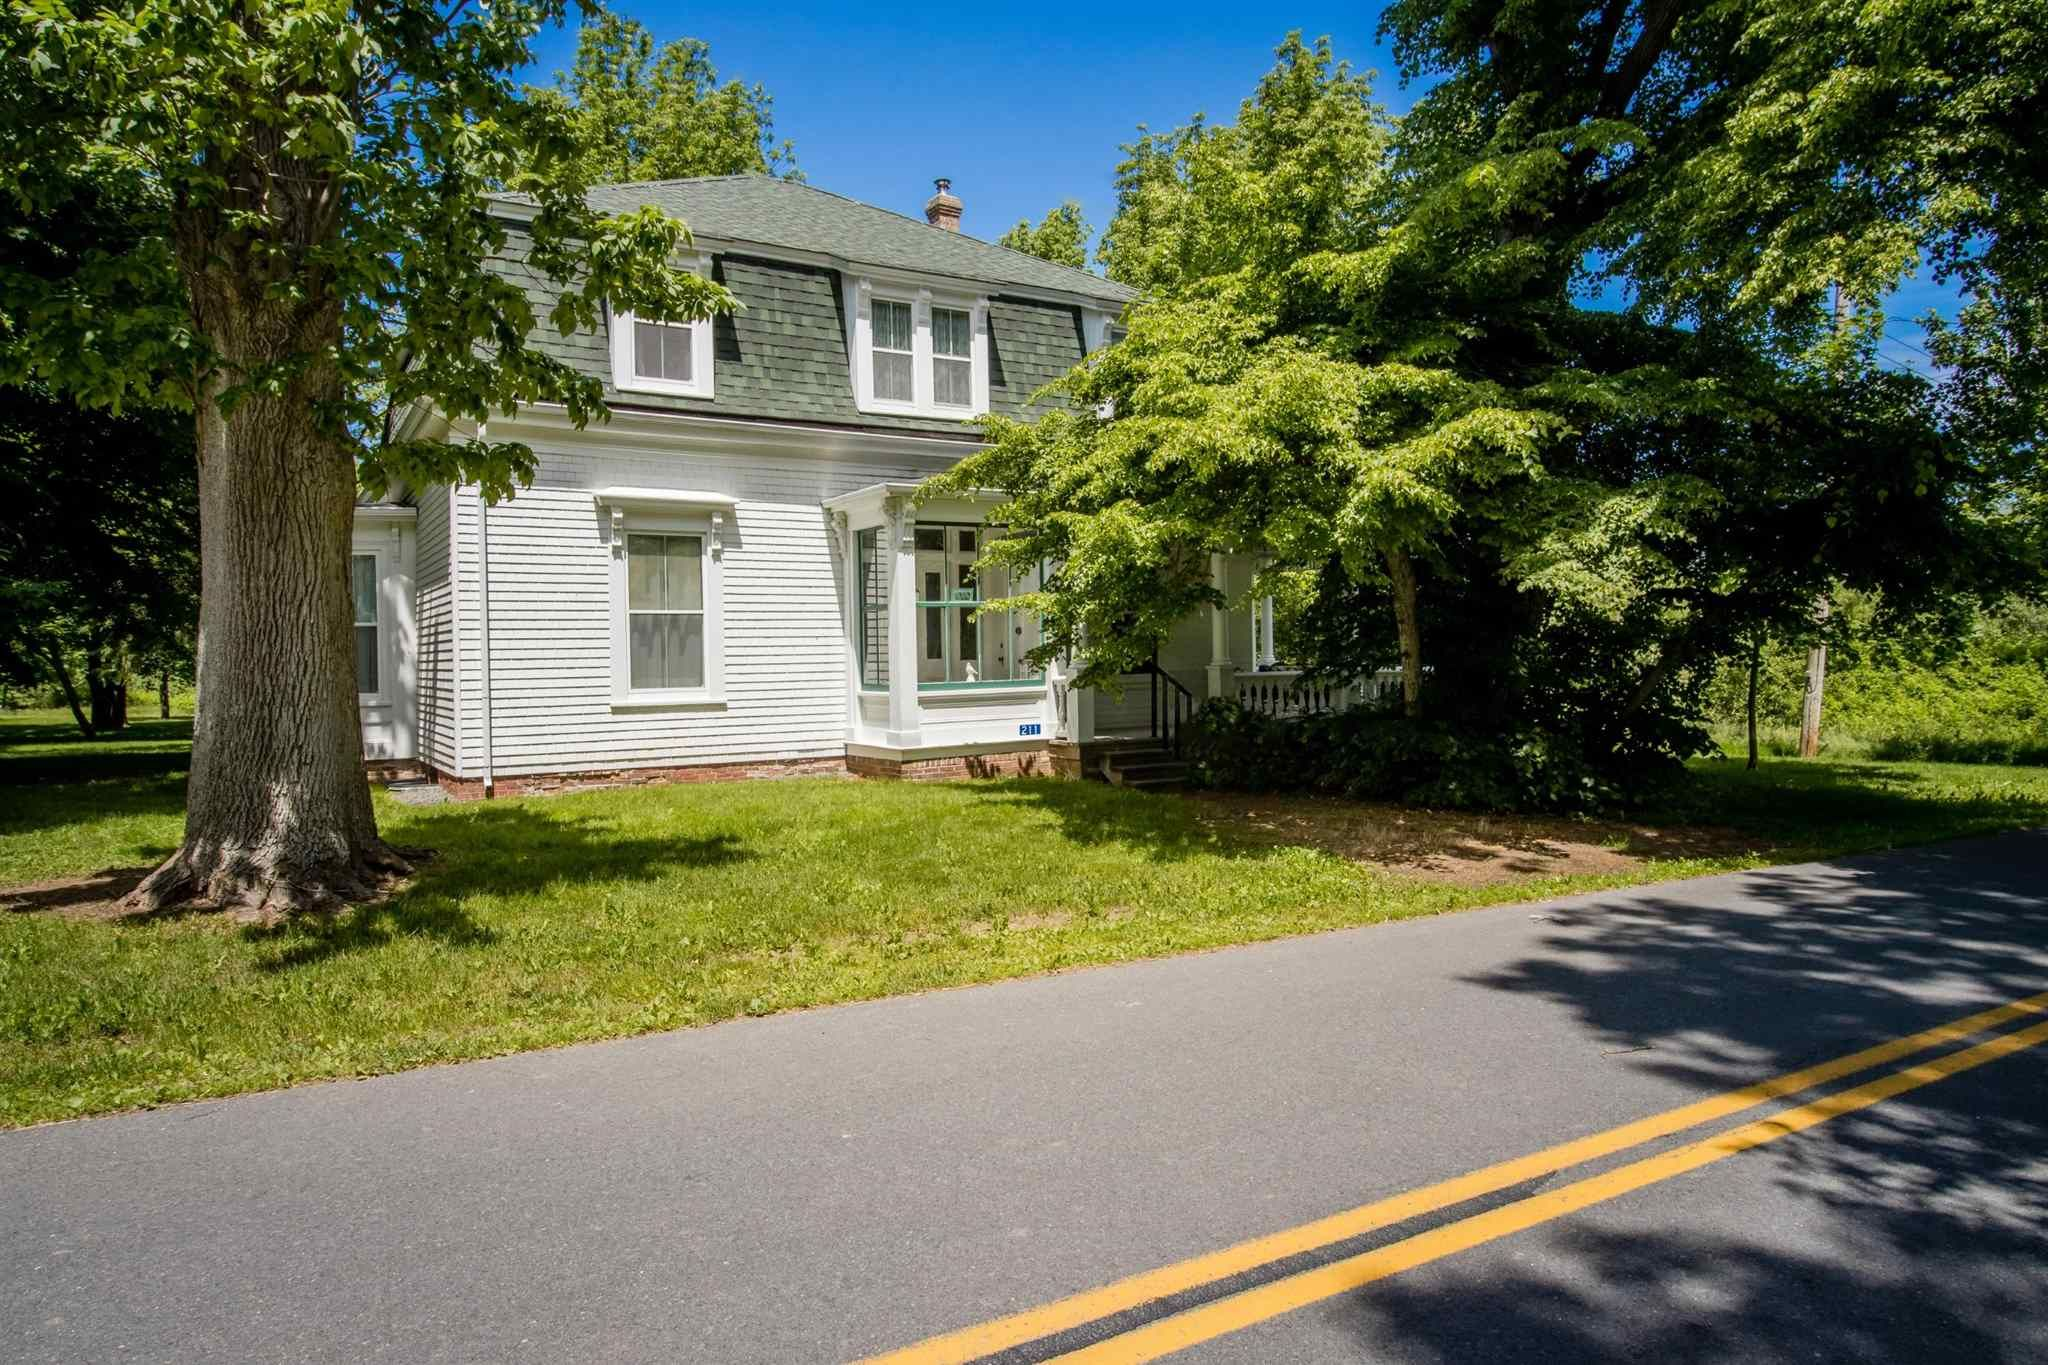 Main Photo: 211 Old Post Road in Grand Pré: 404-Kings County Residential for sale (Annapolis Valley)  : MLS®# 202110077